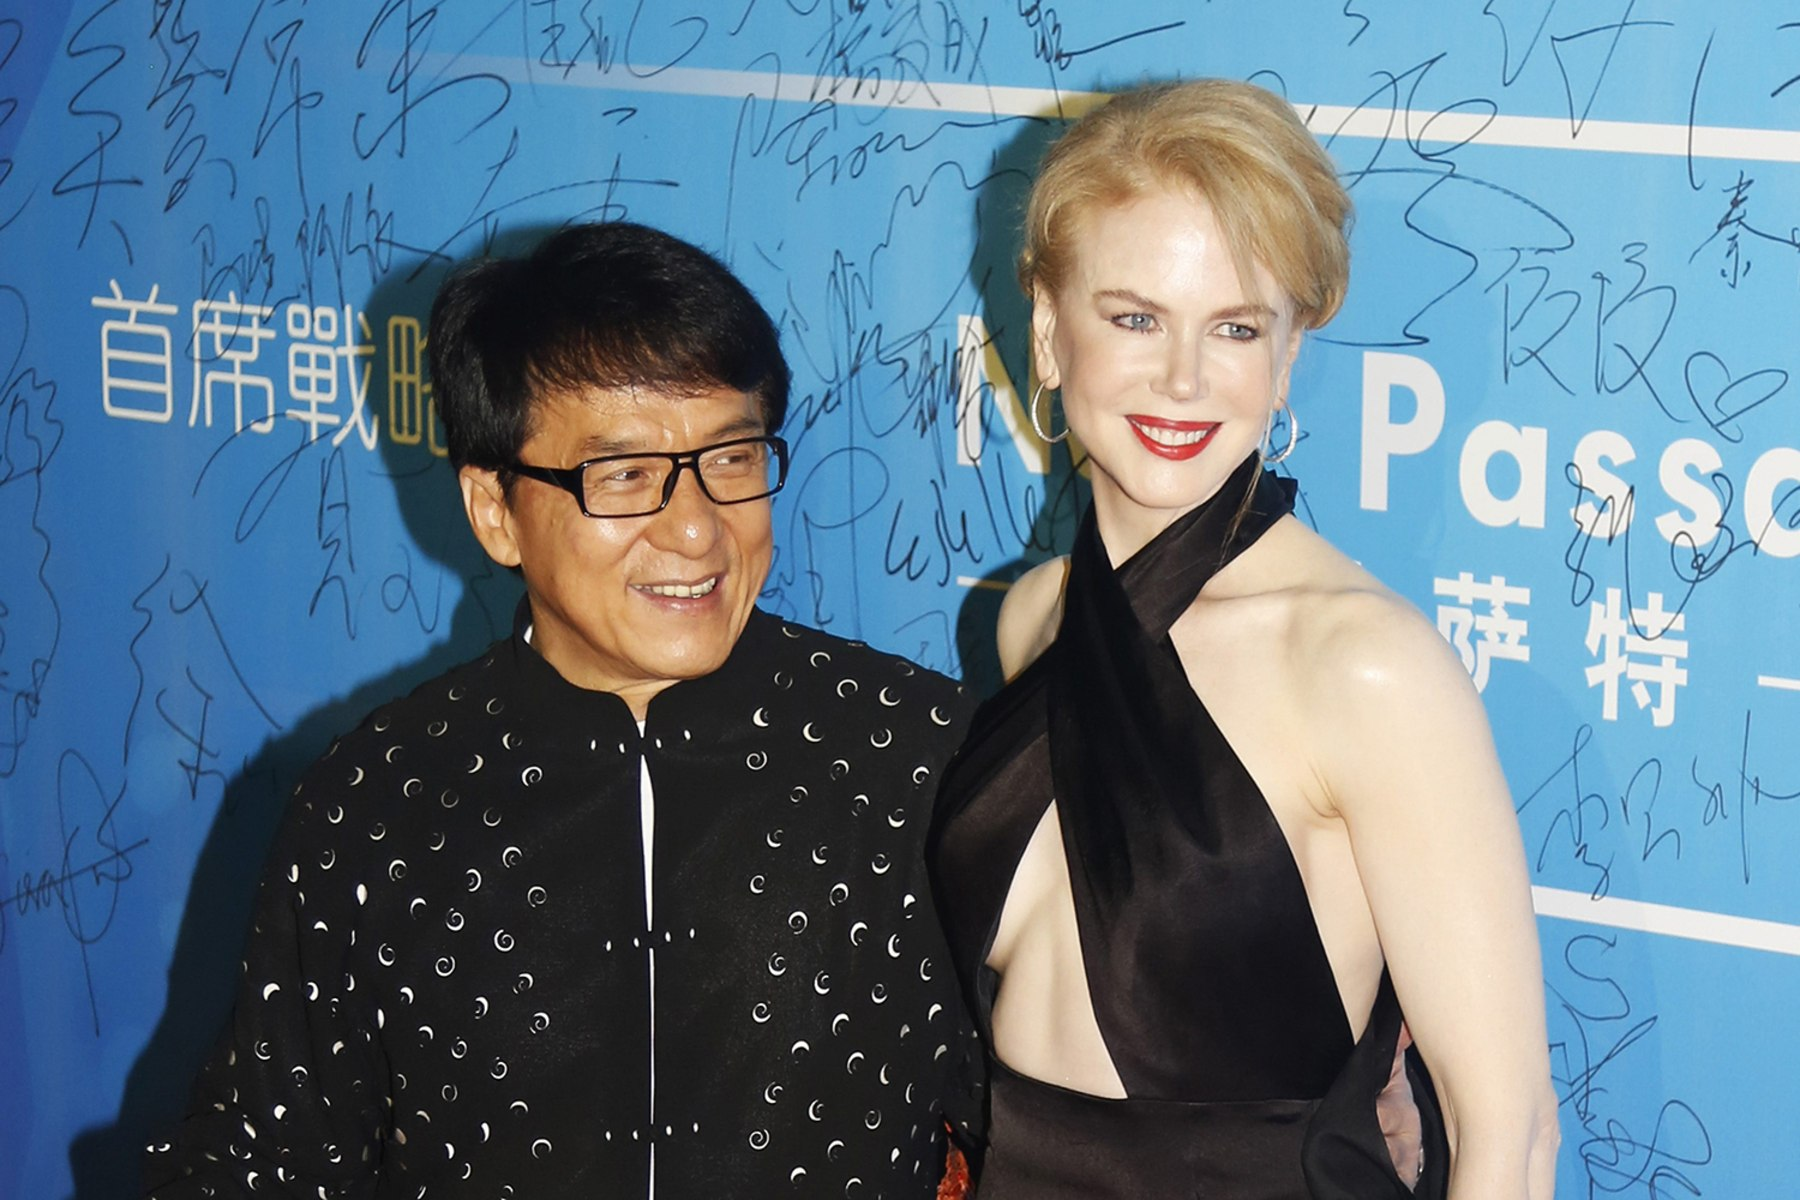 Image: Australian actress Nicole Kidman and Hong Kong actor Jackie Chan pose on the red carpet at the Huading Awards ceremony in Macau